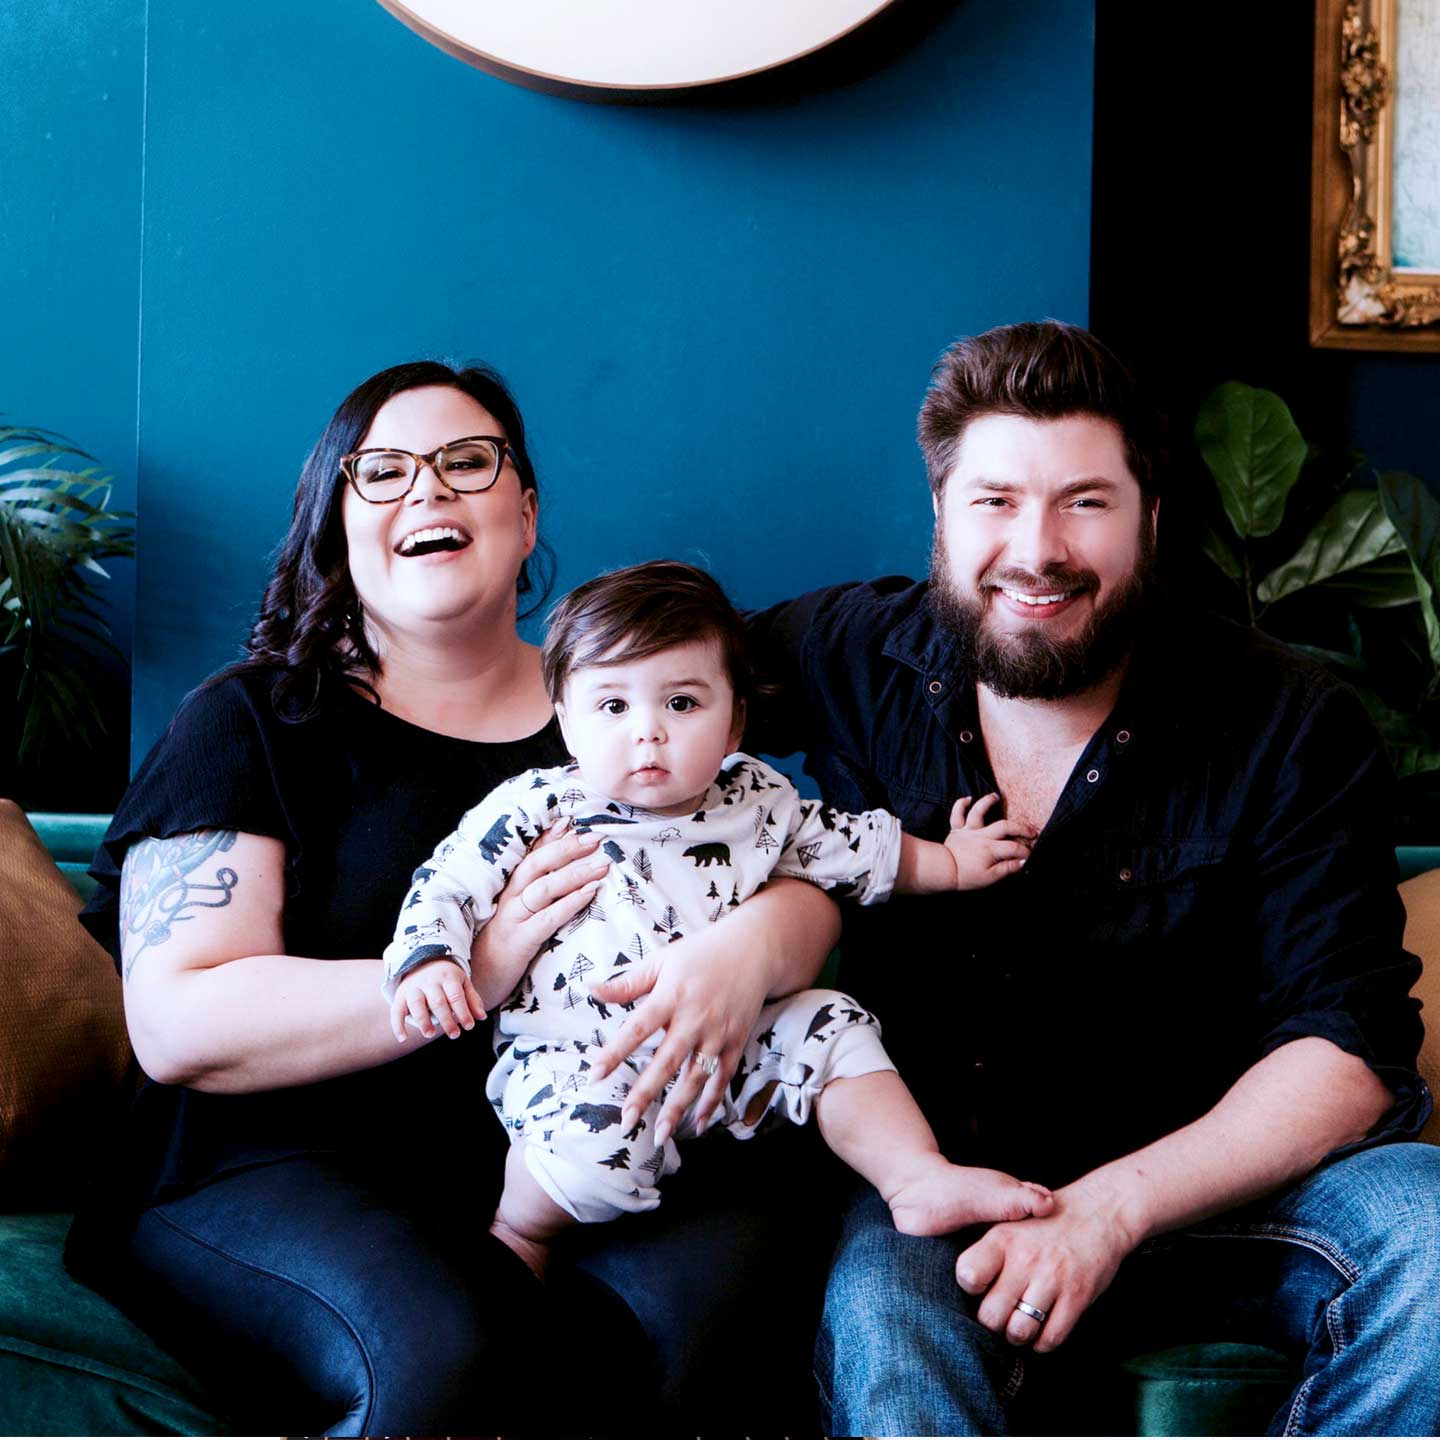 Mixing the personal with the political with business! Feminist brand and web designer Janelle Desrosiers and her husband Nyco are Work at Home parents with their son Jude